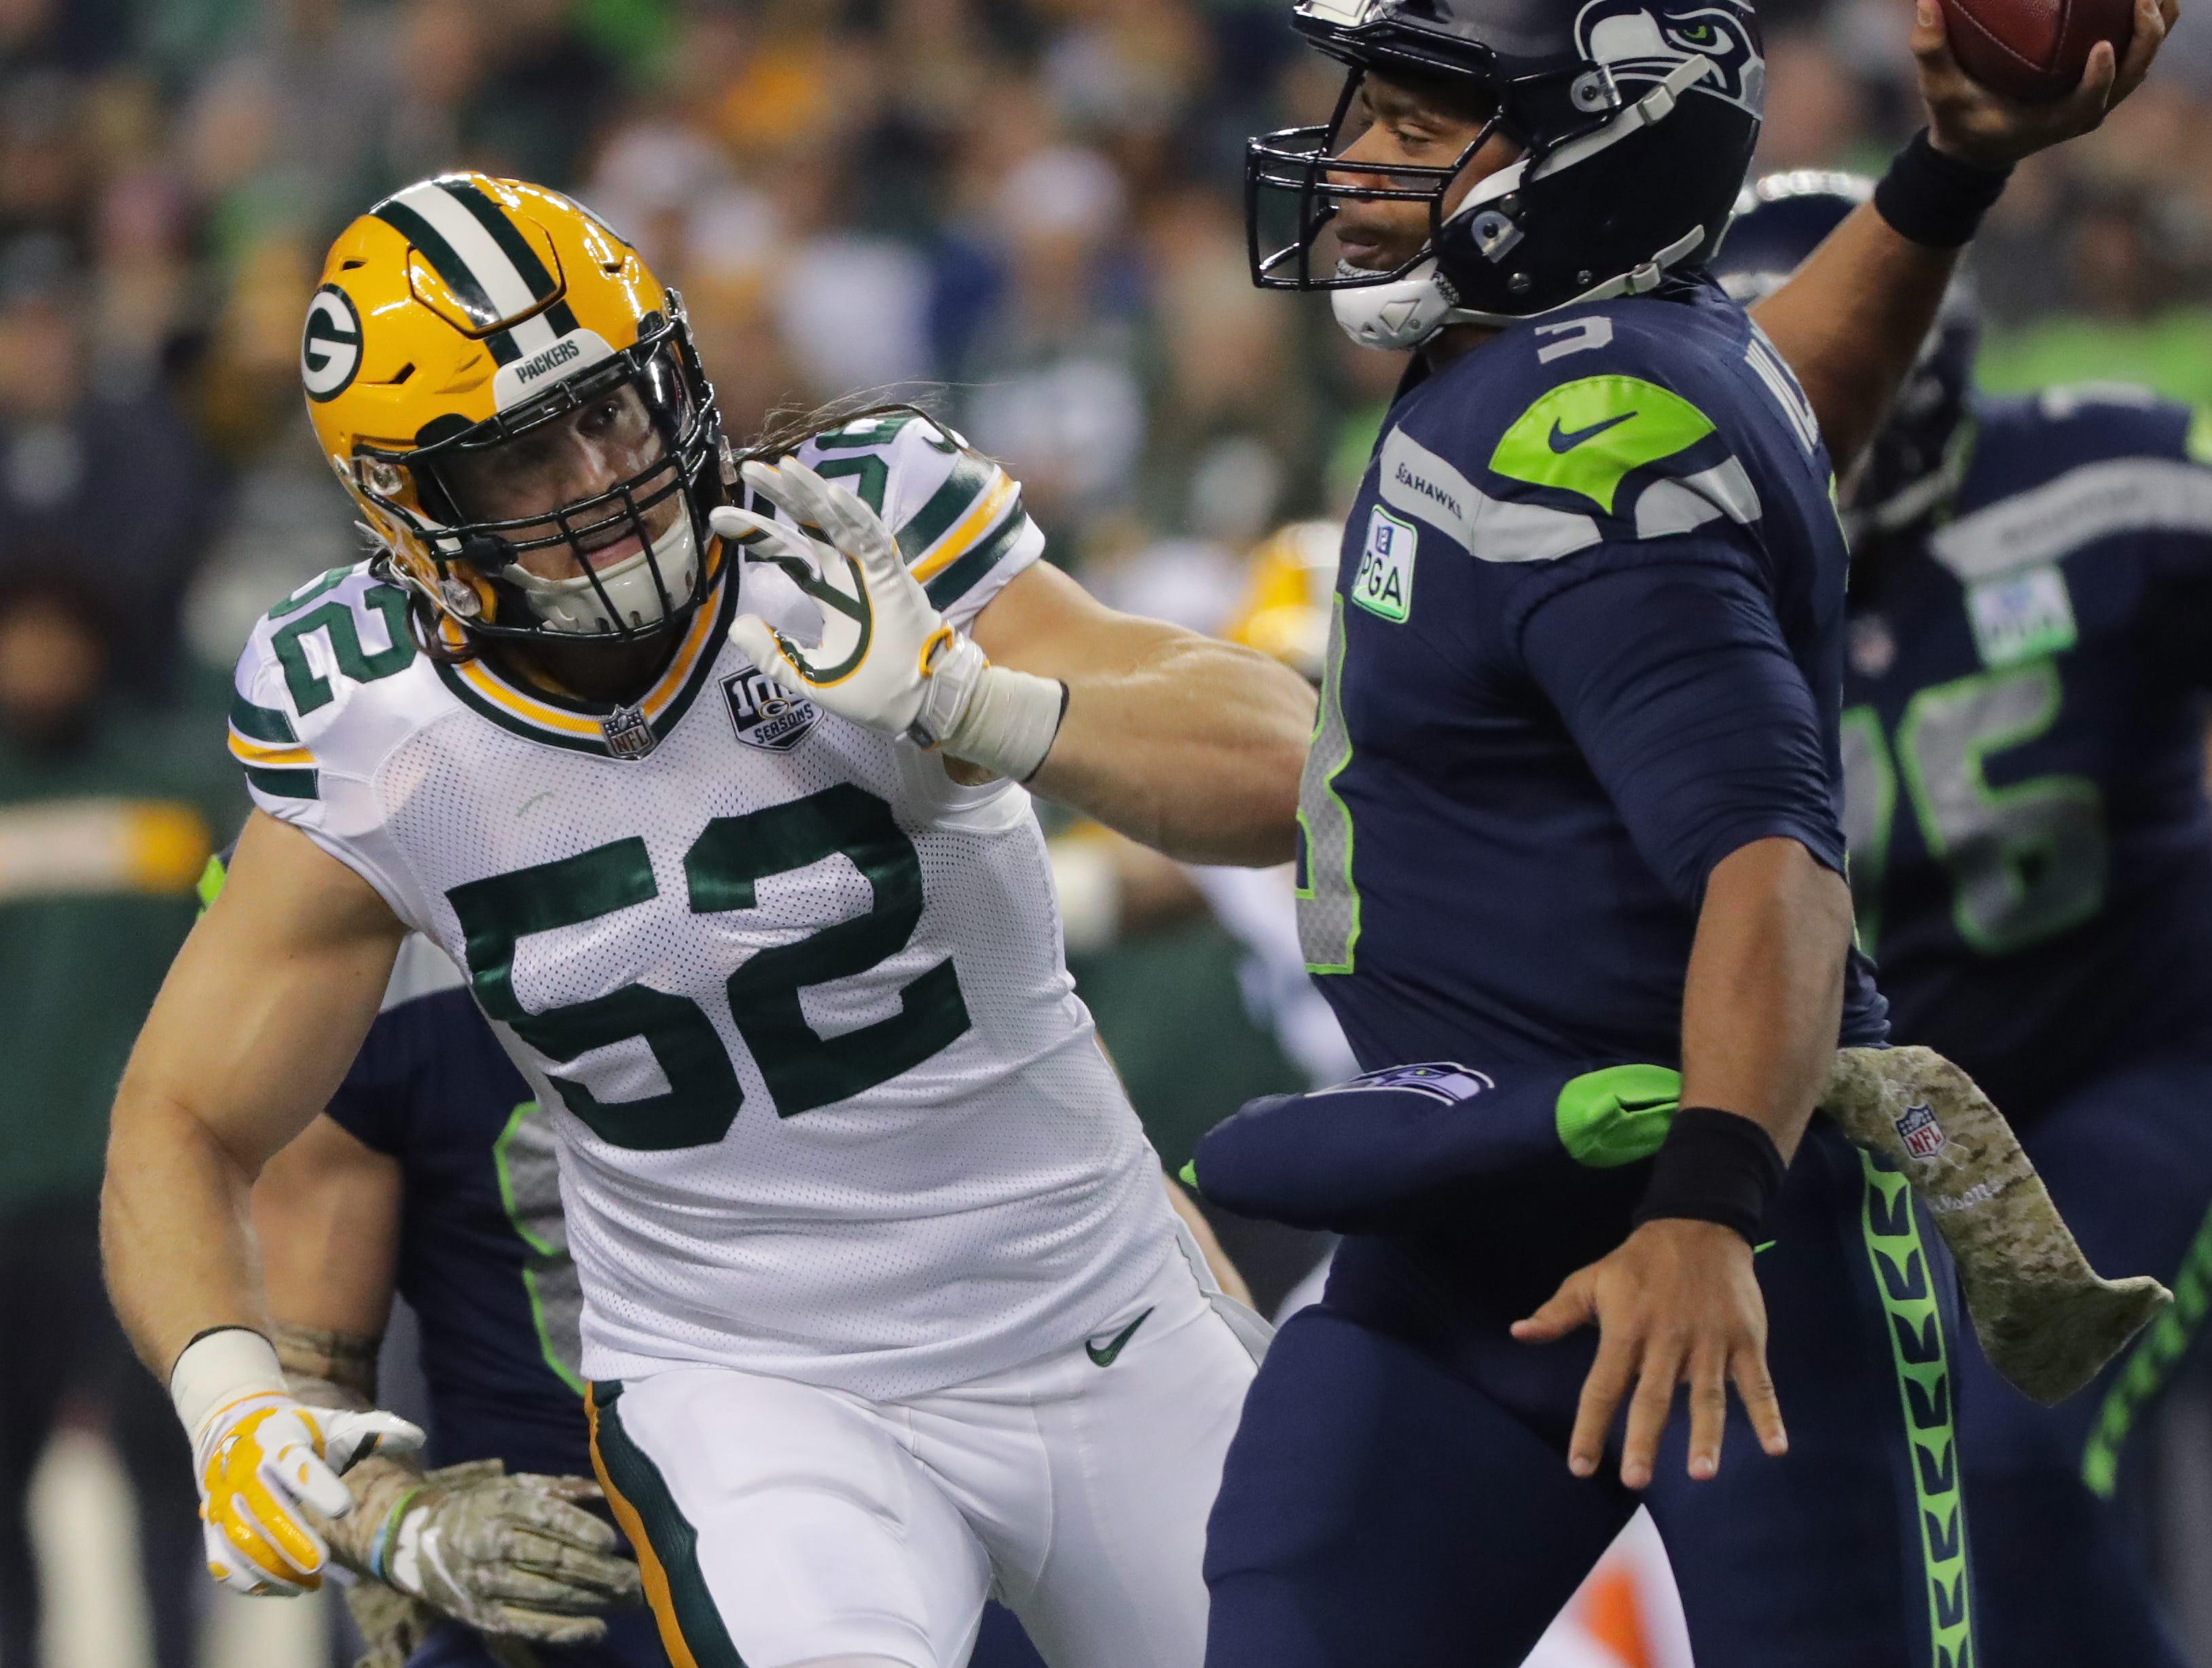 Seattle Seahawks quarterback Russell Wilson (3) is pressured by Green Bay Packers outside linebacker Clay Matthews (52) during the first quarter of their game Thursday, November 25, 2018 at CenturyLink Field in Seattle, Wash.